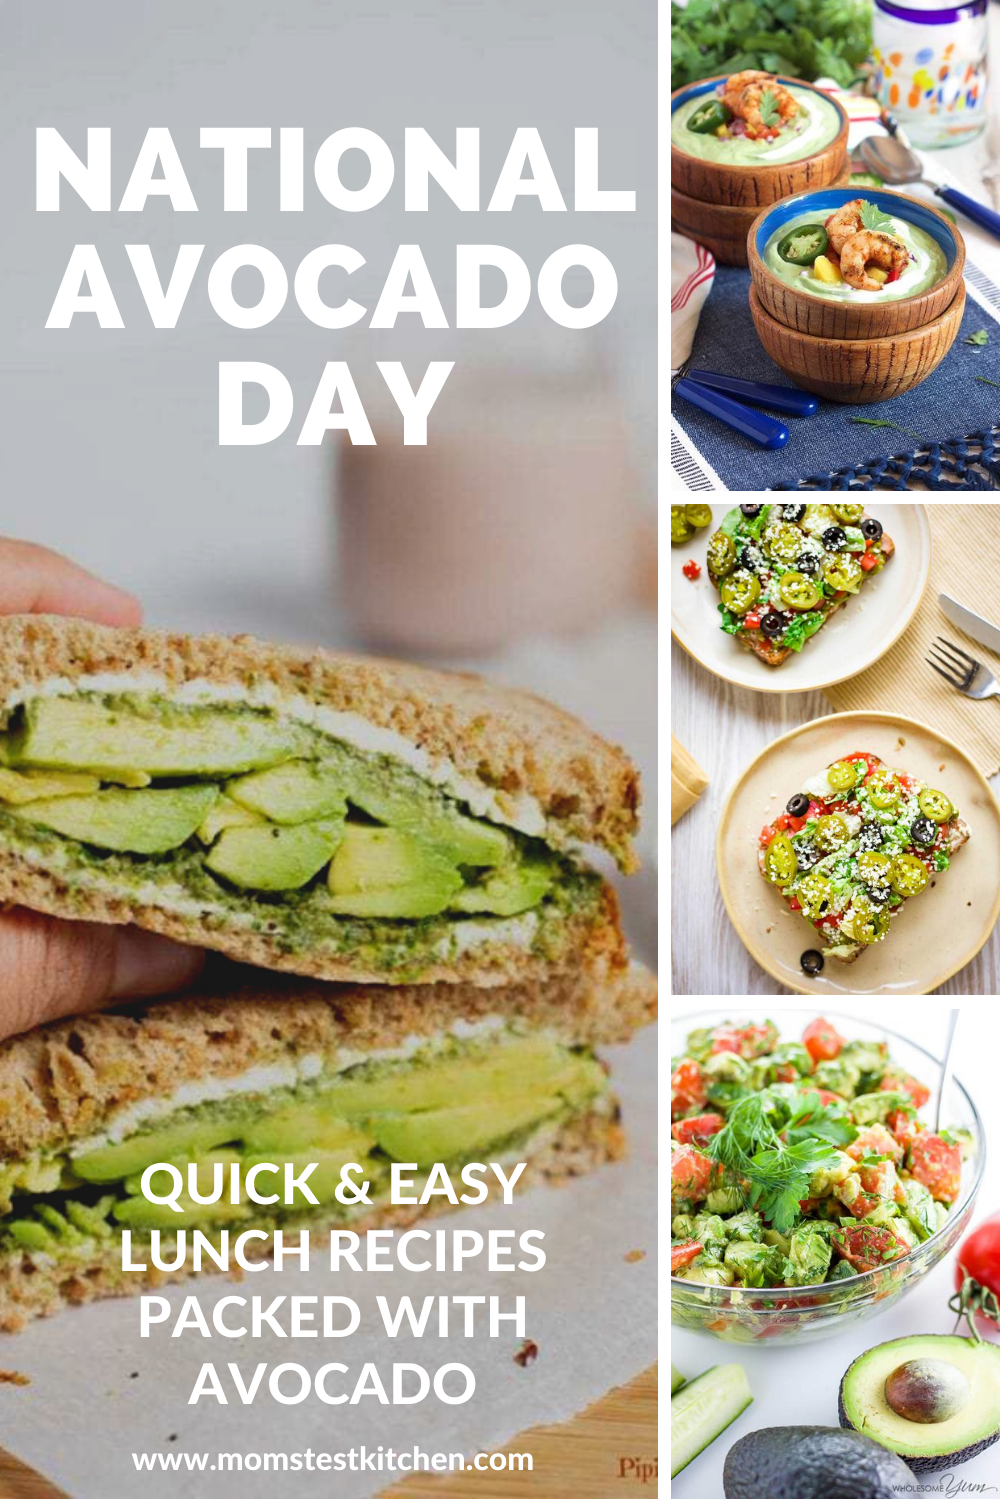 Celebrate National Avocado Day with any of these quick and easy lunch recipes packed with delicious avocado!